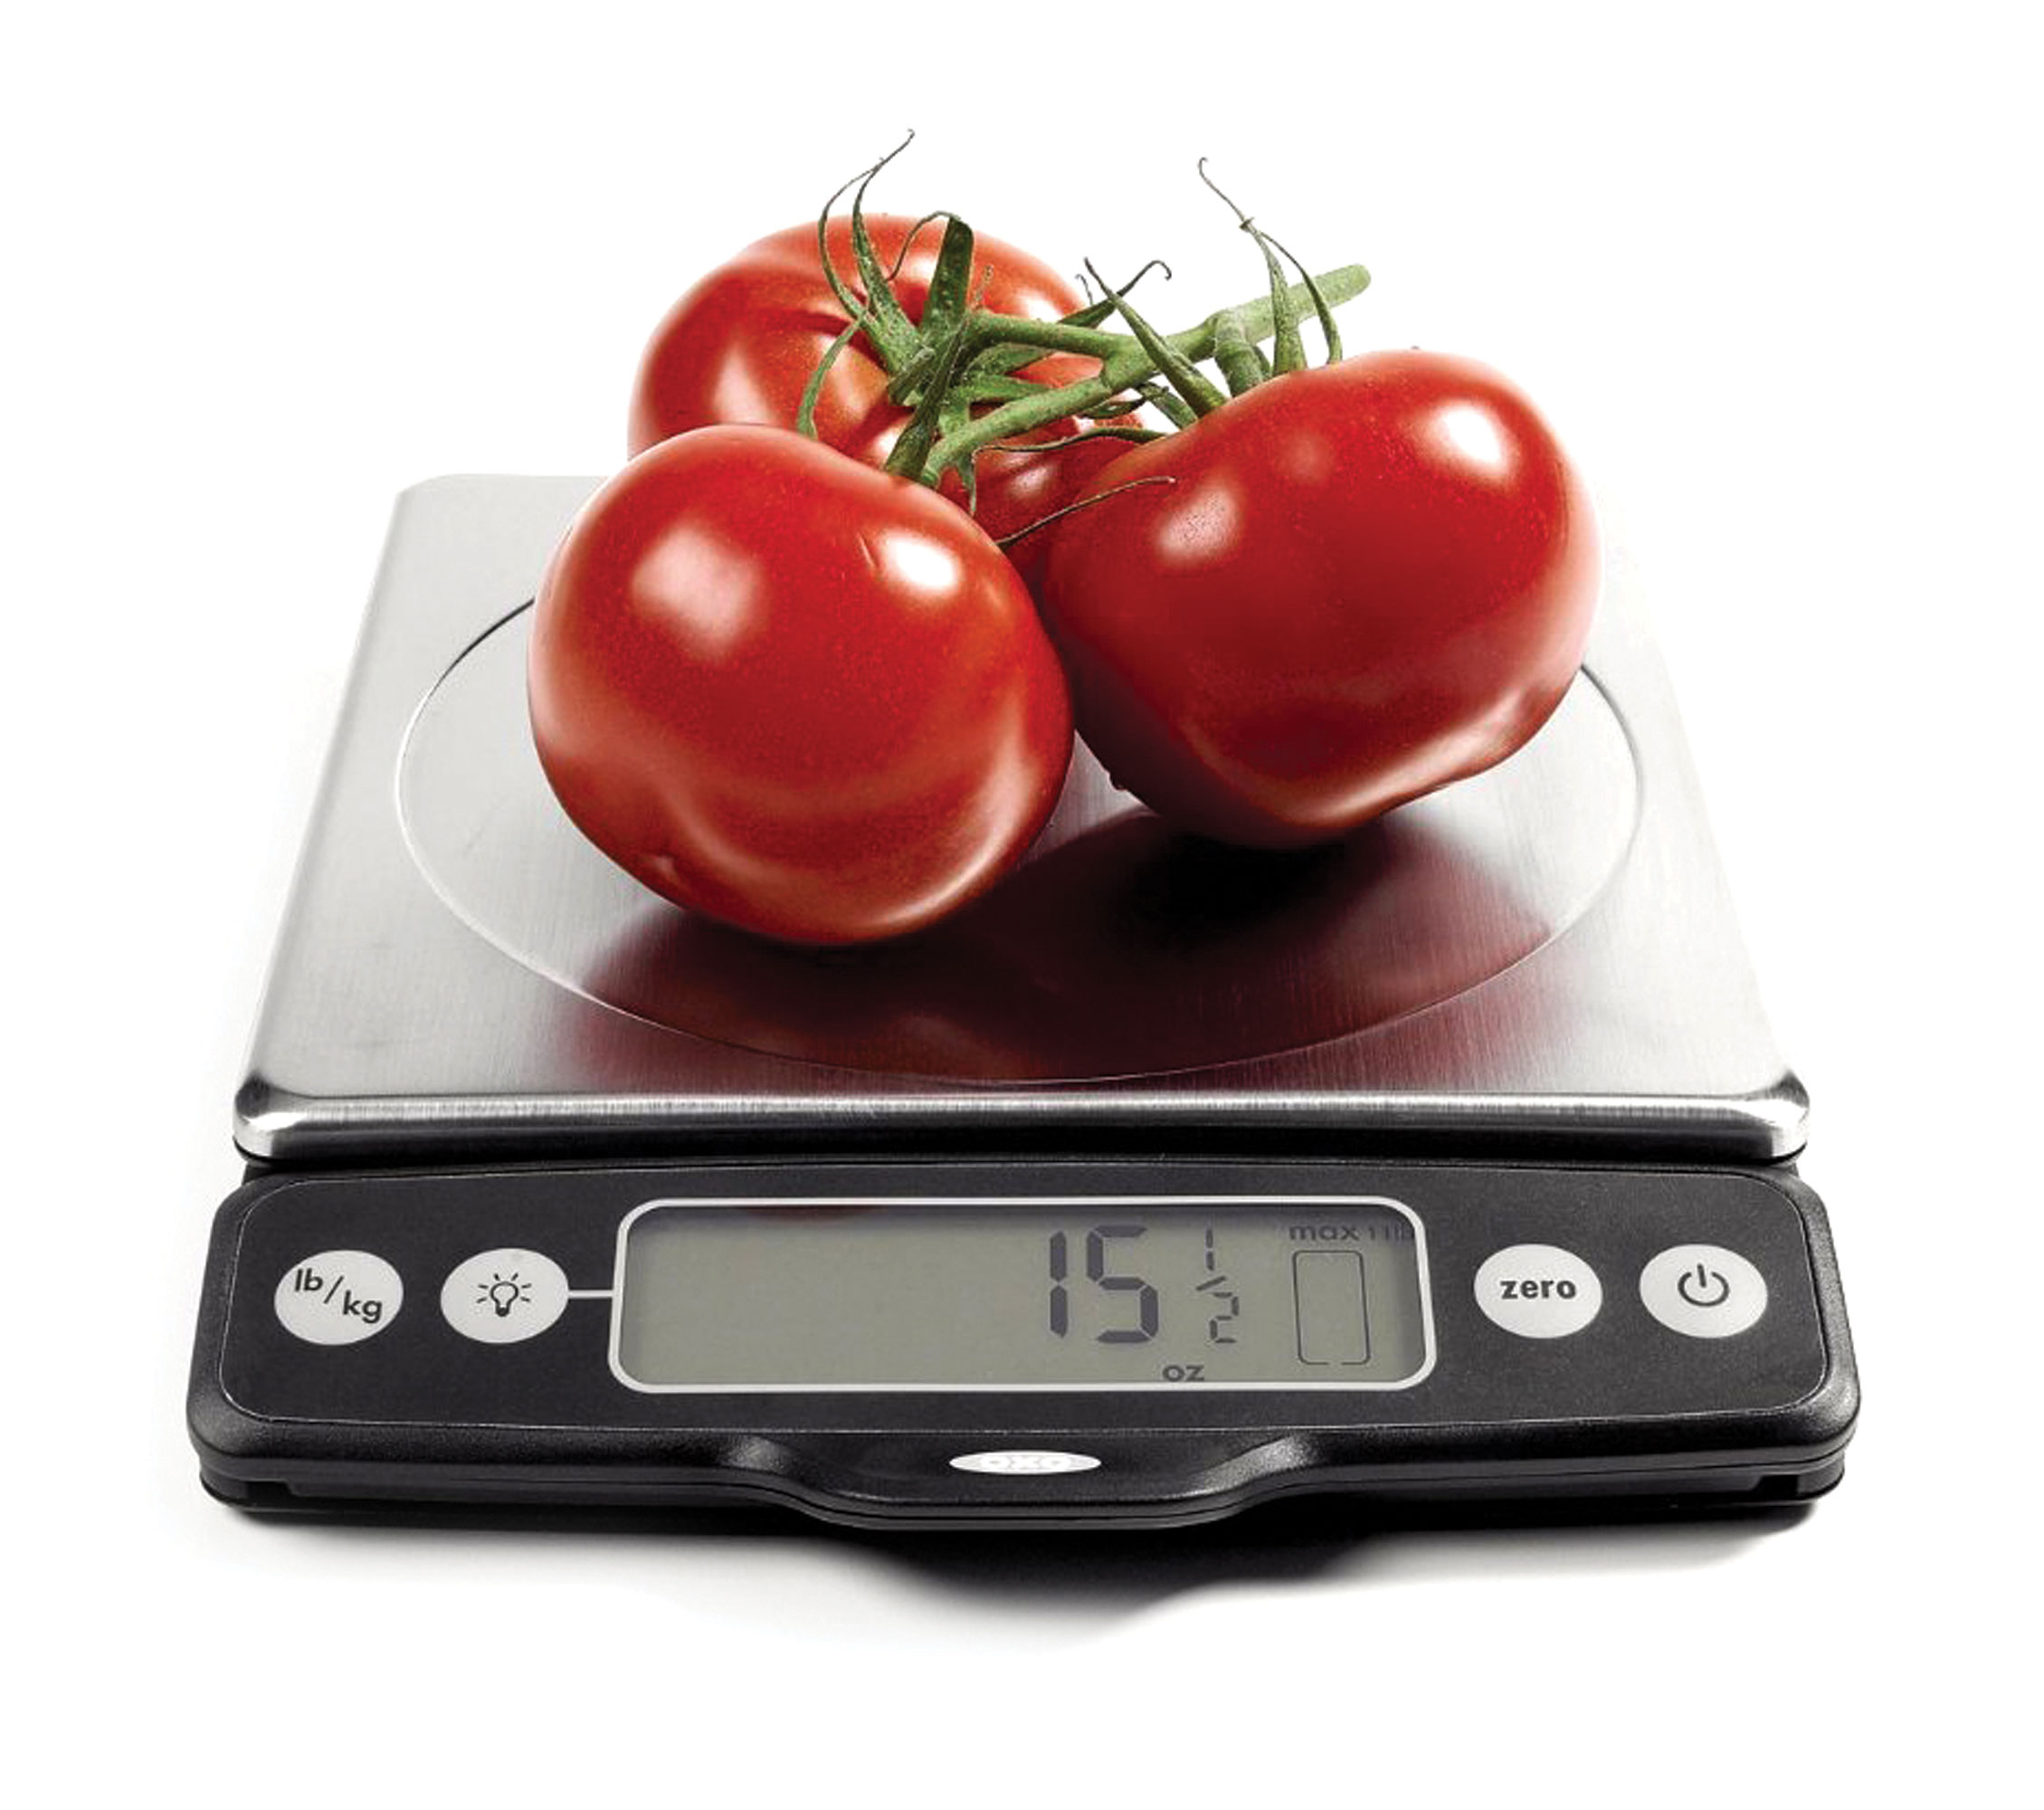 Oxo Good Grips Digital Kitchen Scale With Pull-Out Display